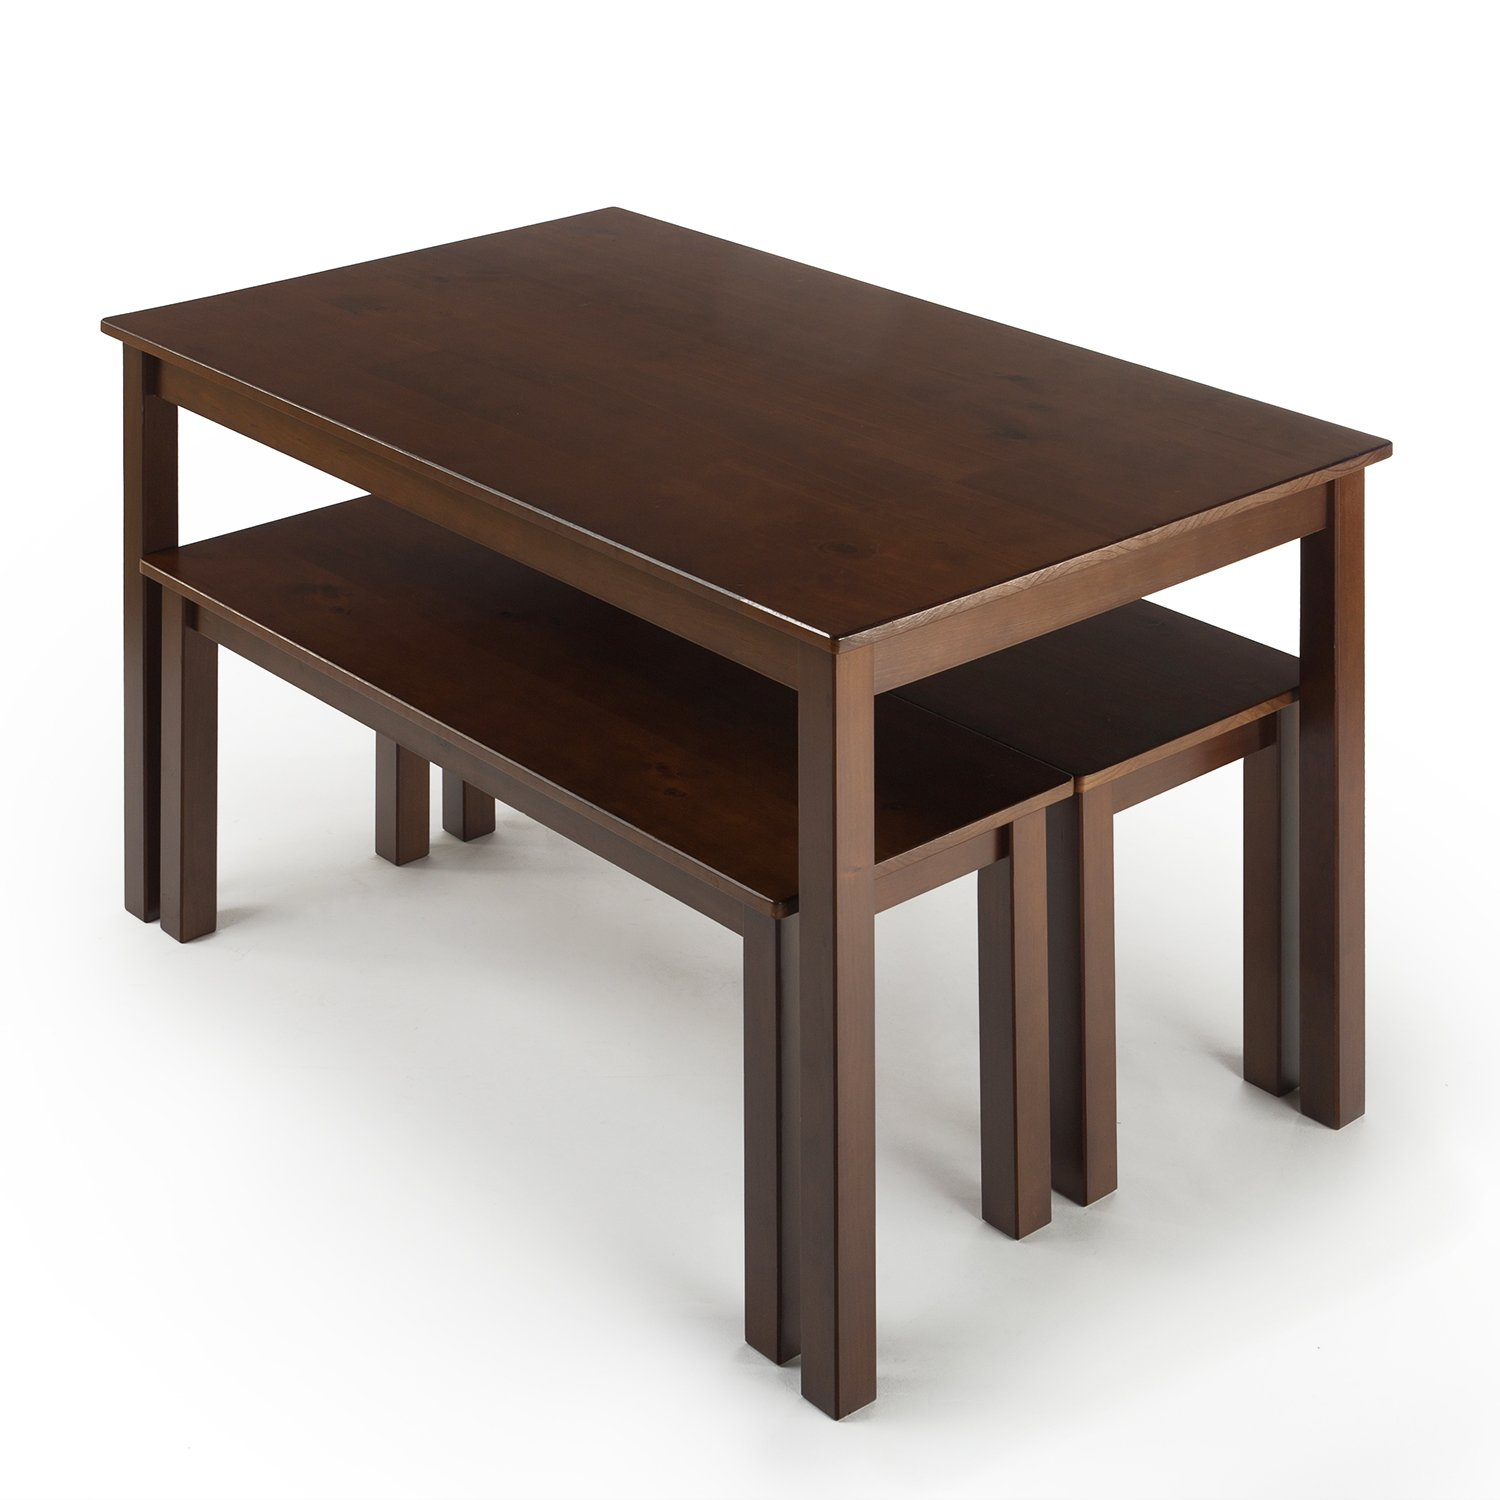 Zinus Juliet Espresso Wood Dining Table With Two Benches 3